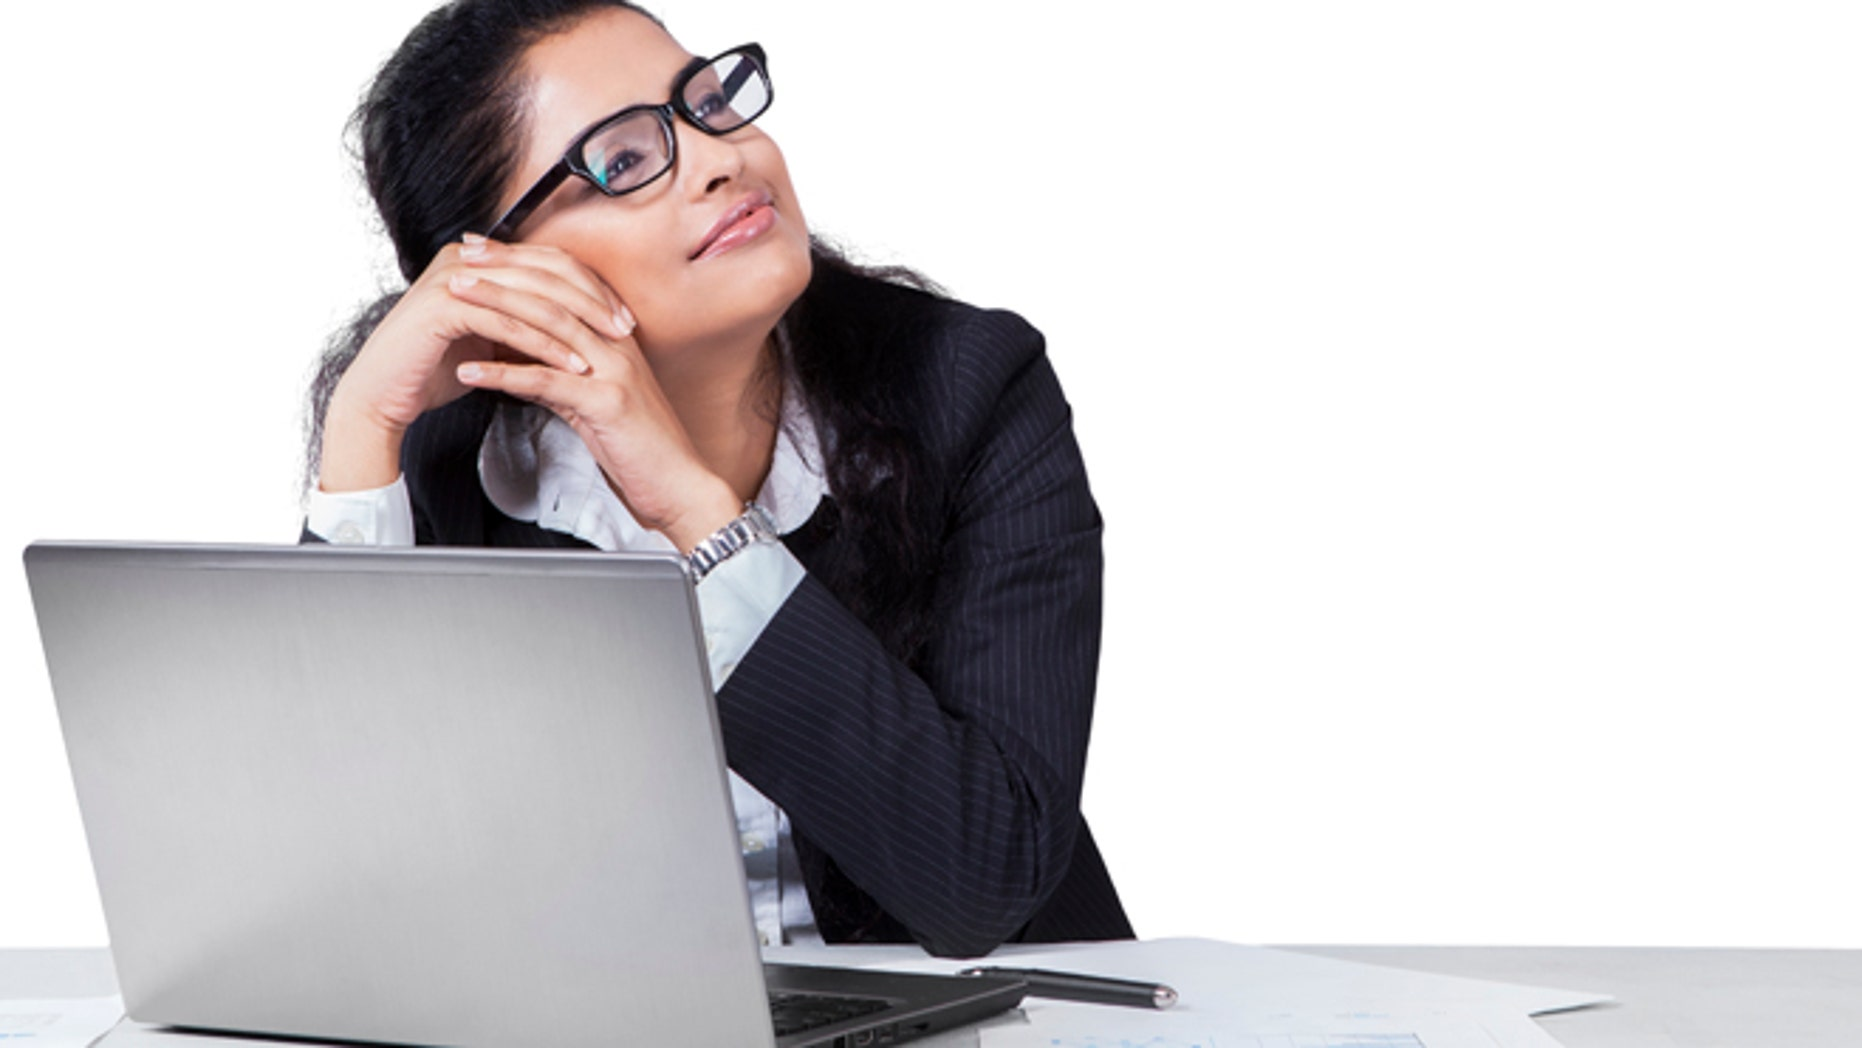 Portait of female entrepreneur working on desk while daydreaming, isolated on white background